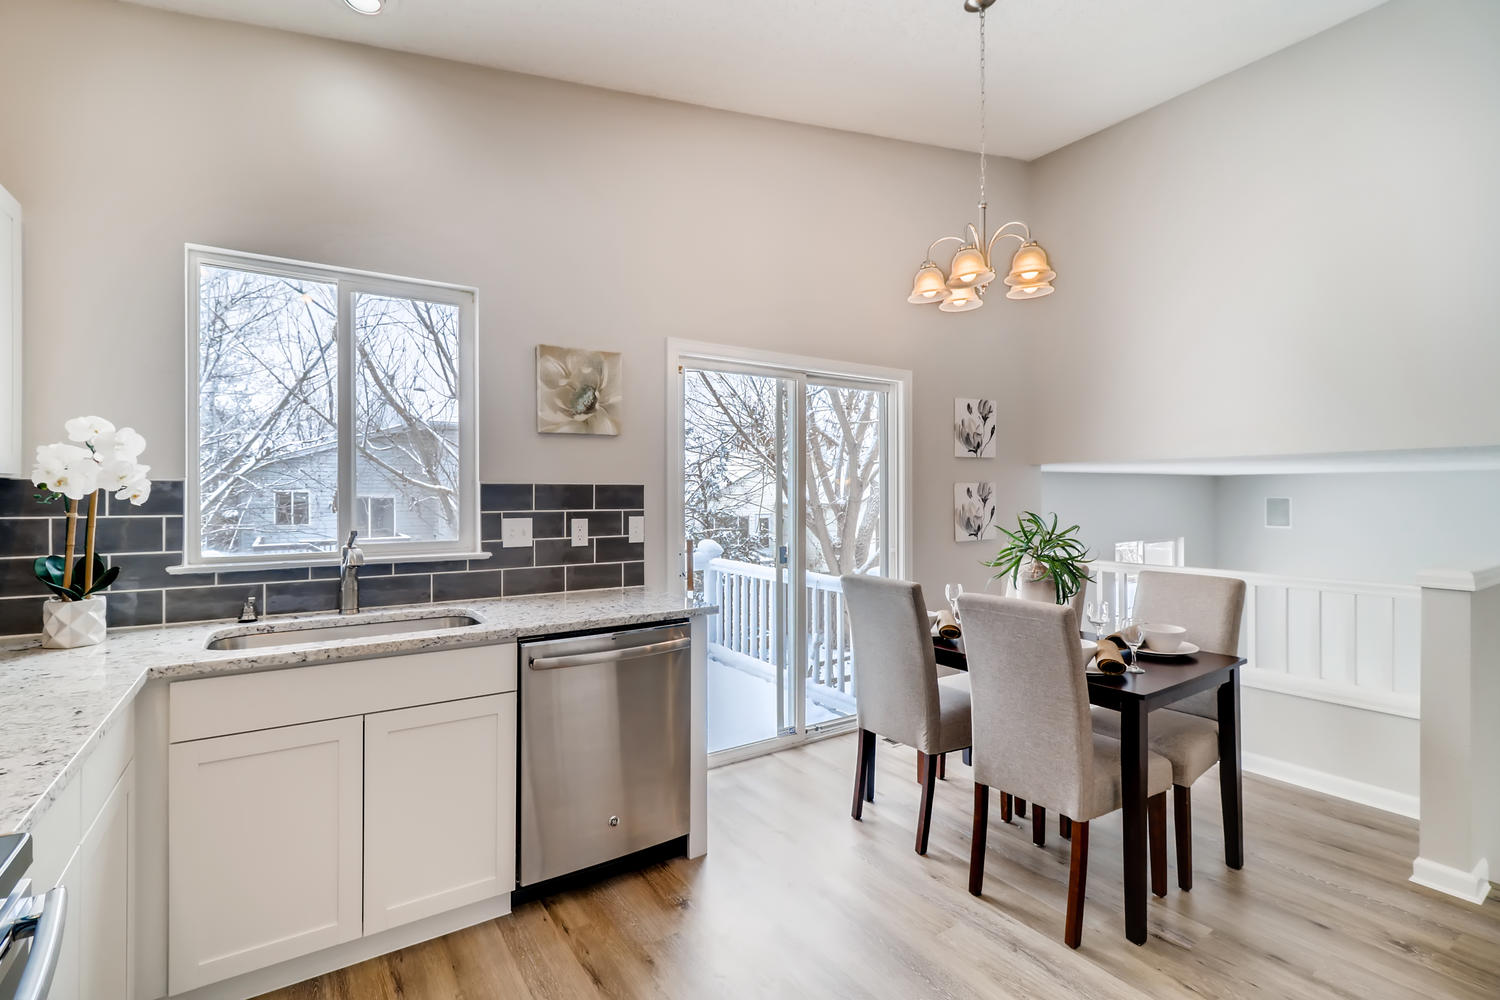 REAL ESTATE LISTING: 1902 Fountain Court Eat In Kitchen